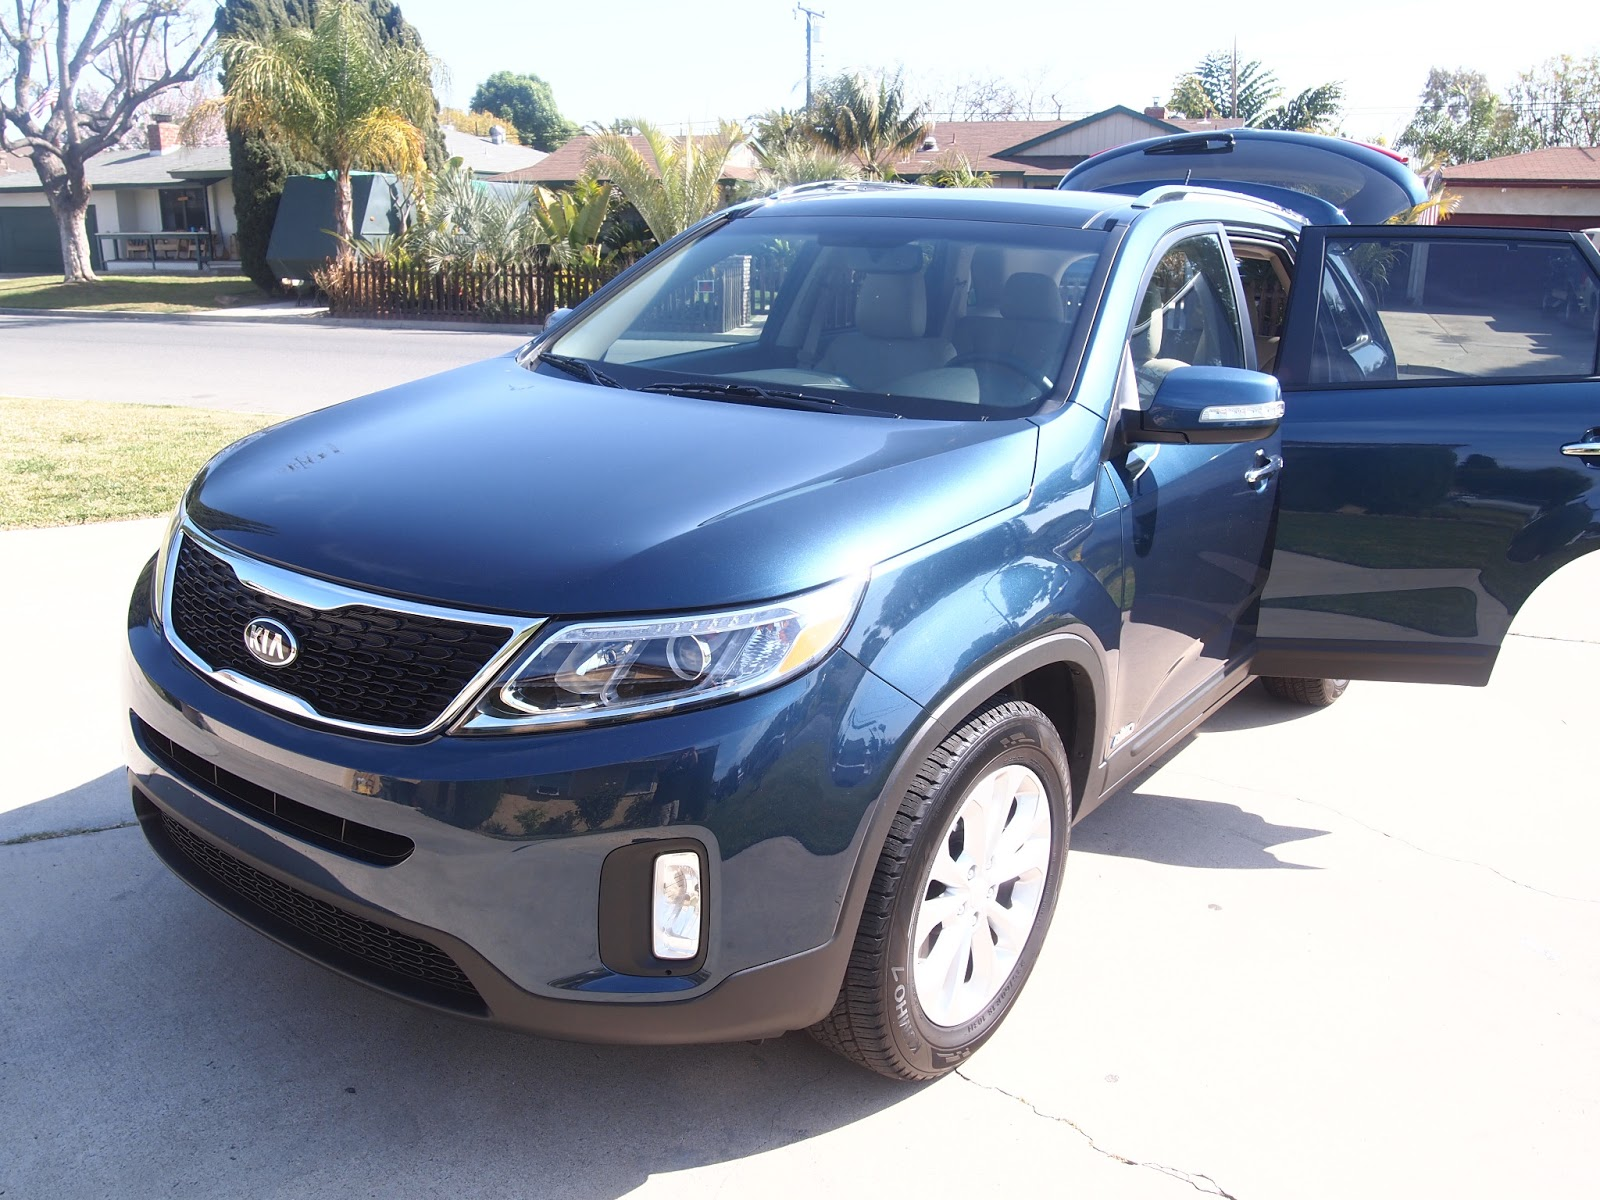 sasaki time car review 2014 kia sorento. Black Bedroom Furniture Sets. Home Design Ideas